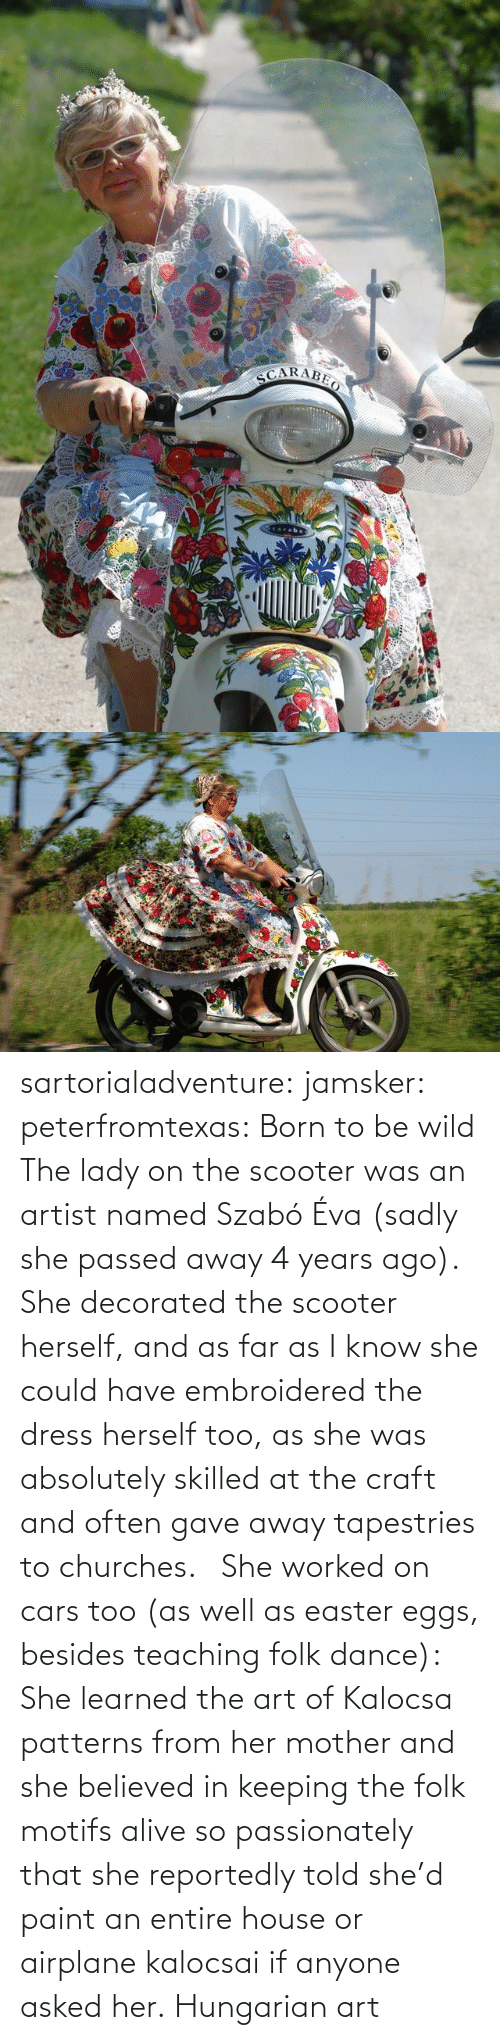 born: sartorialadventure: jamsker:  peterfromtexas: Born to be wild The lady on the scooter was an artist named Szabó Éva (sadly she passed away 4 years ago). She decorated the scooter herself, and as far as I know she could have embroidered the dress herself too, as she was absolutely skilled at the craft and often gave away tapestries to churches.   She worked on cars too (as well as easter eggs, besides teaching folk dance): She learned the art of Kalocsa patterns from her mother and she believed in keeping the folk motifs alive so passionately that she reportedly told she'd paint an entire house or airplane kalocsai if anyone asked her.  Hungarian art